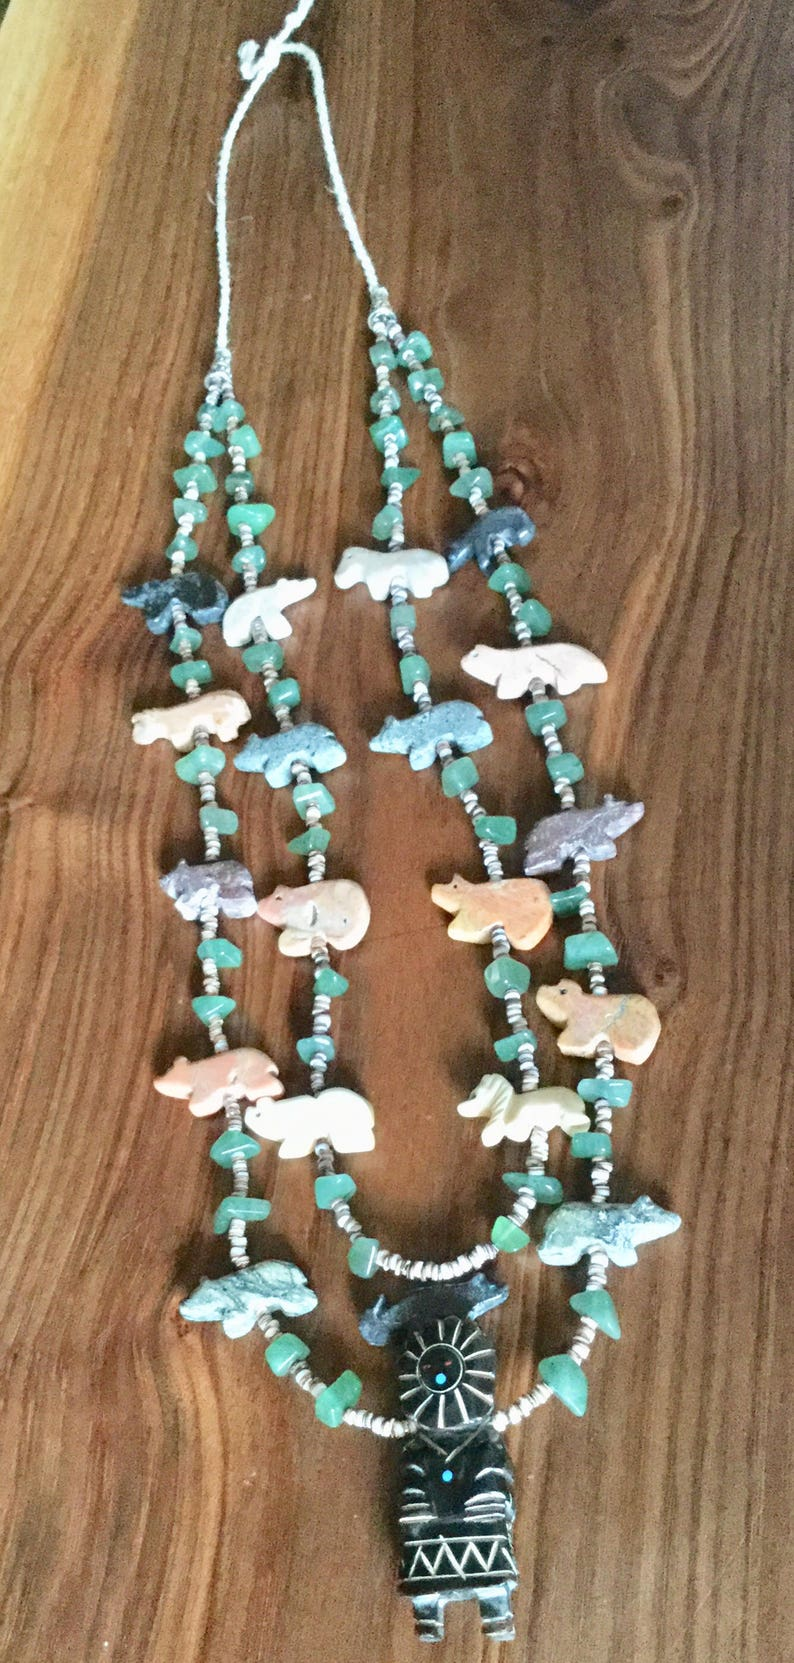 Horses Bears Beautiful Vintage Old Pawn Zuni Fetish Necklace Featuring a Kachina Dancer